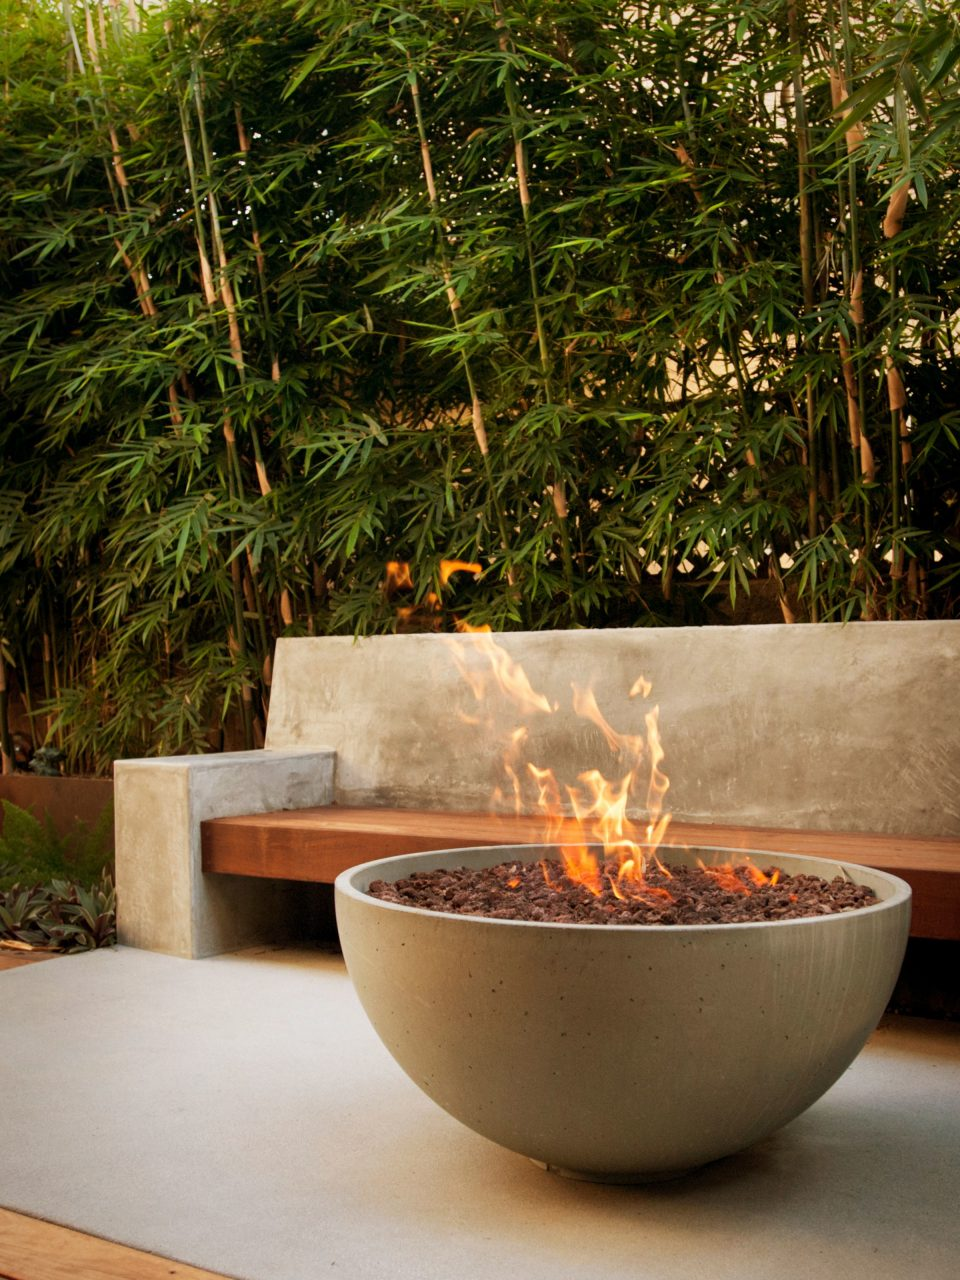 6 Fire Pit Ideas For Your Outdoor Space Architectural Digest